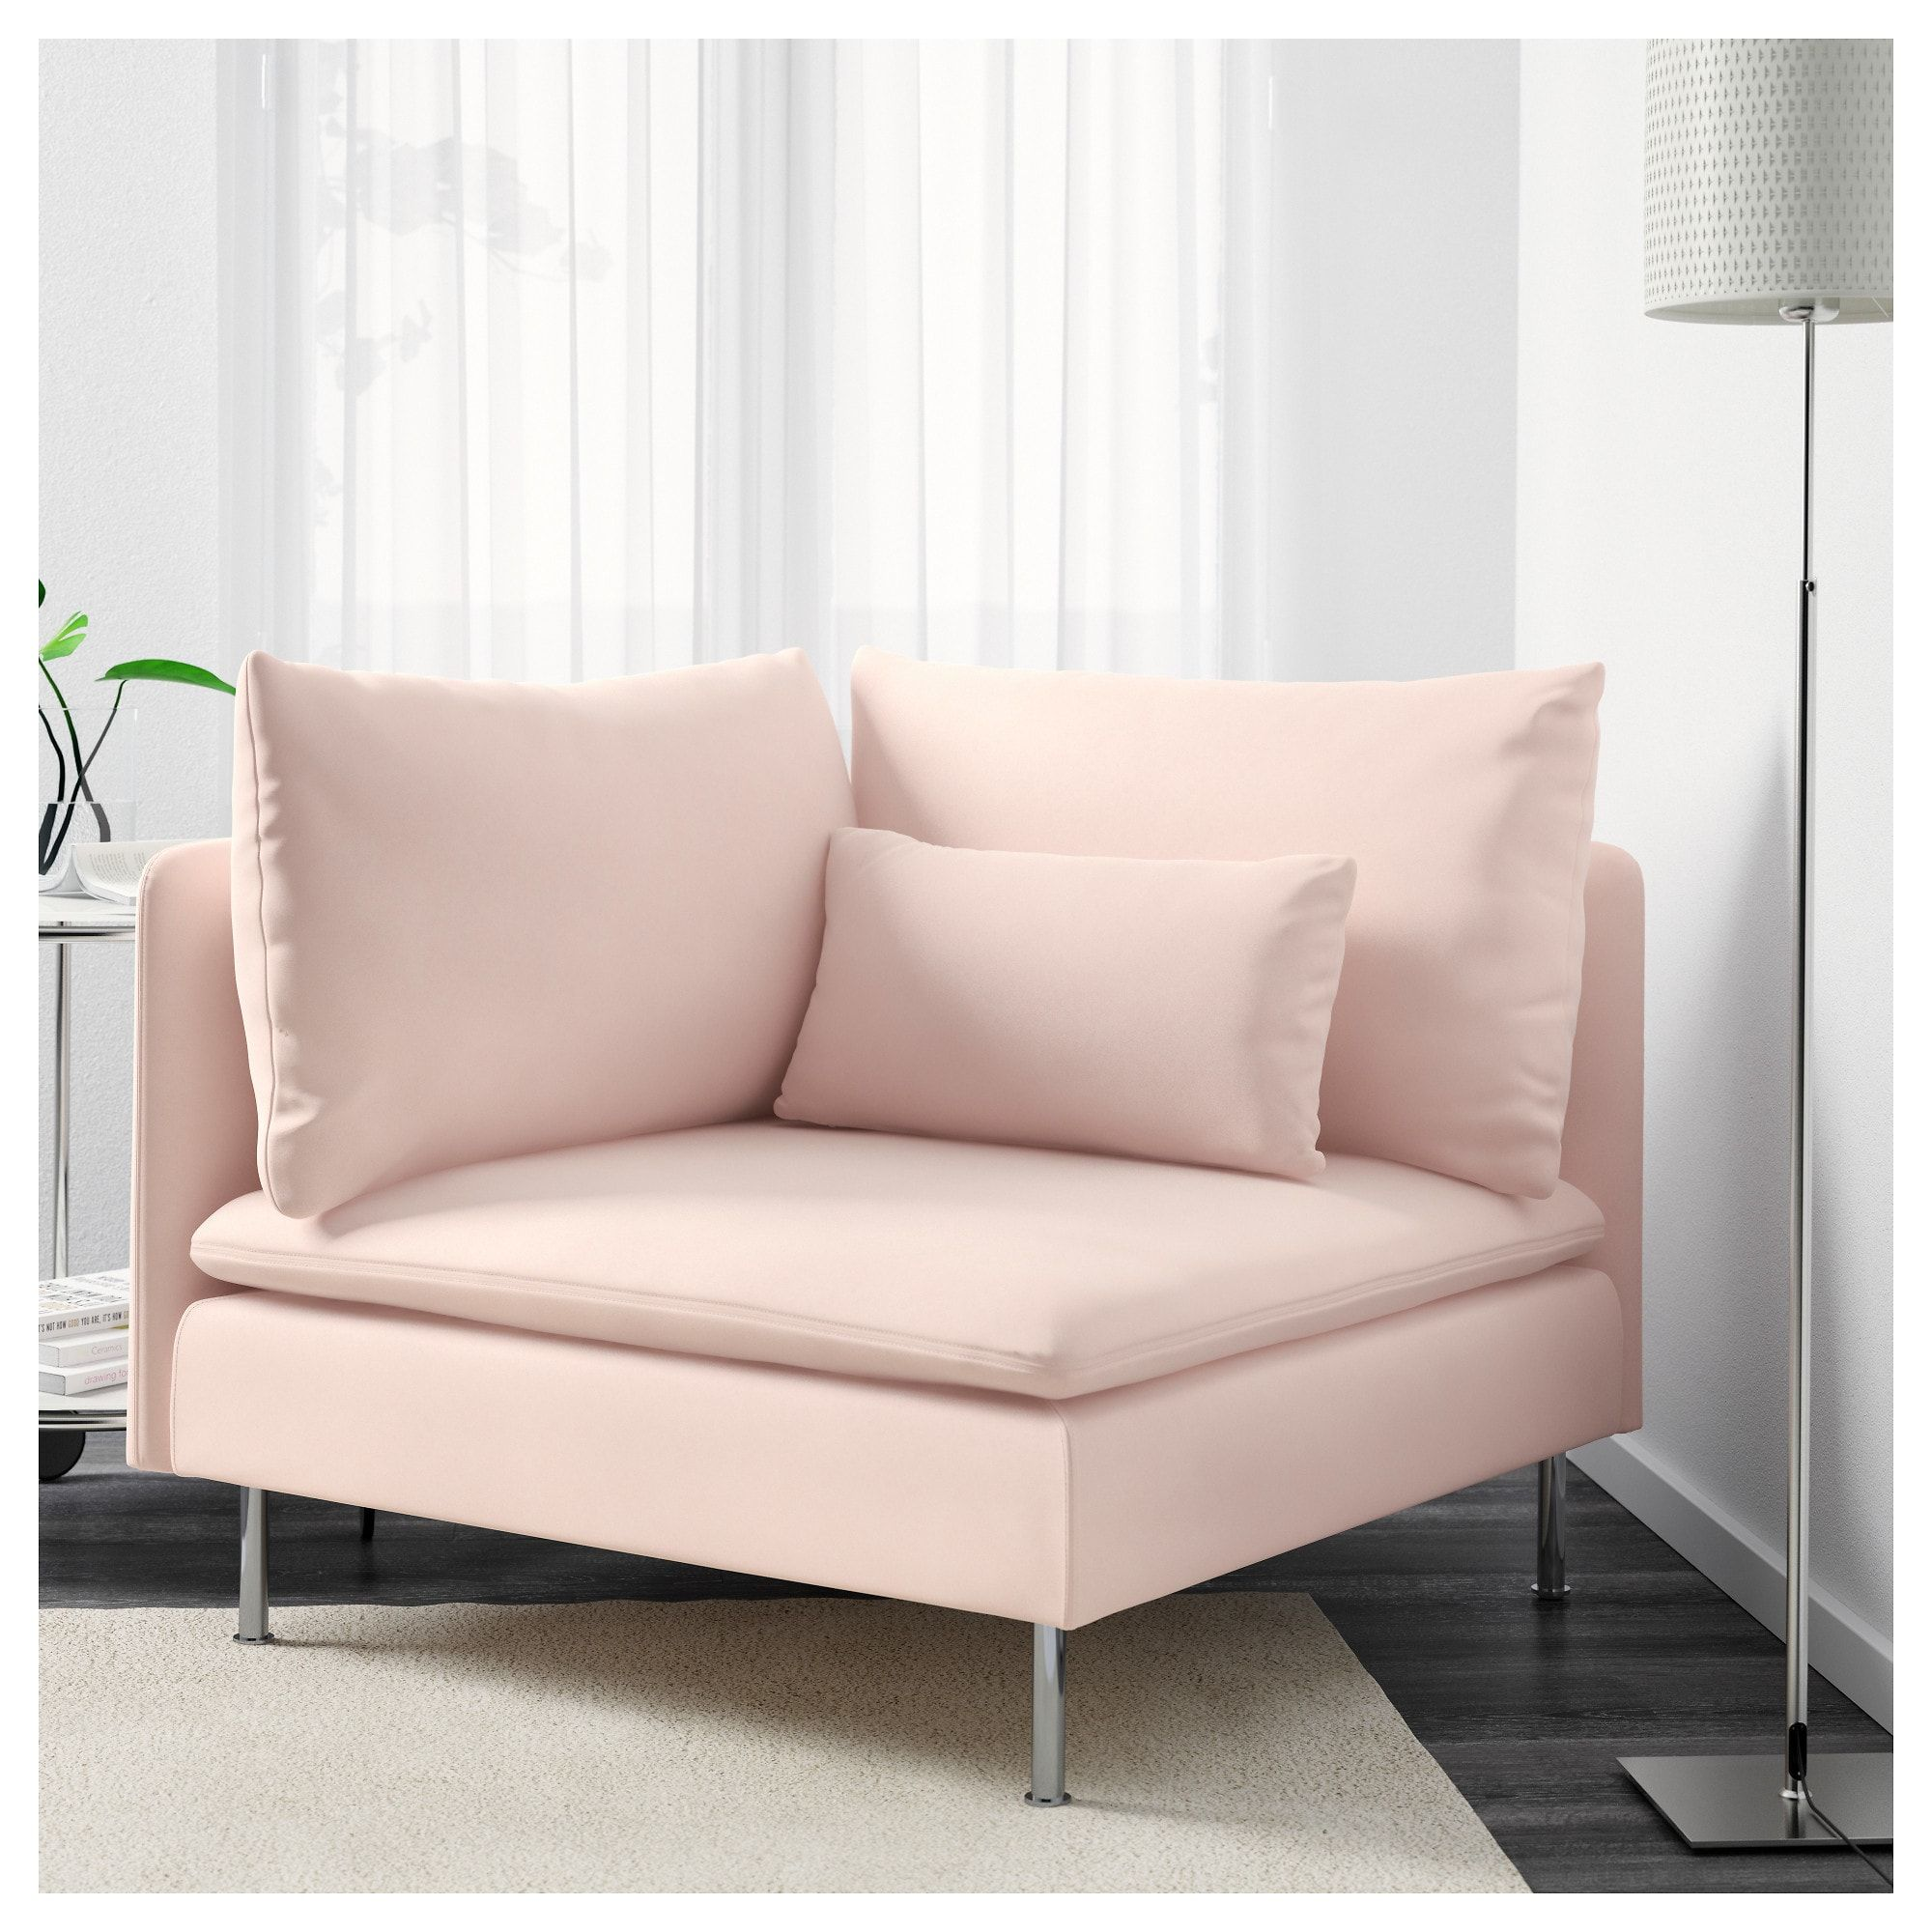 Soderhamn Corner Section Samsta Light Pink Pink Couch Sofa Uk Living Room Seating